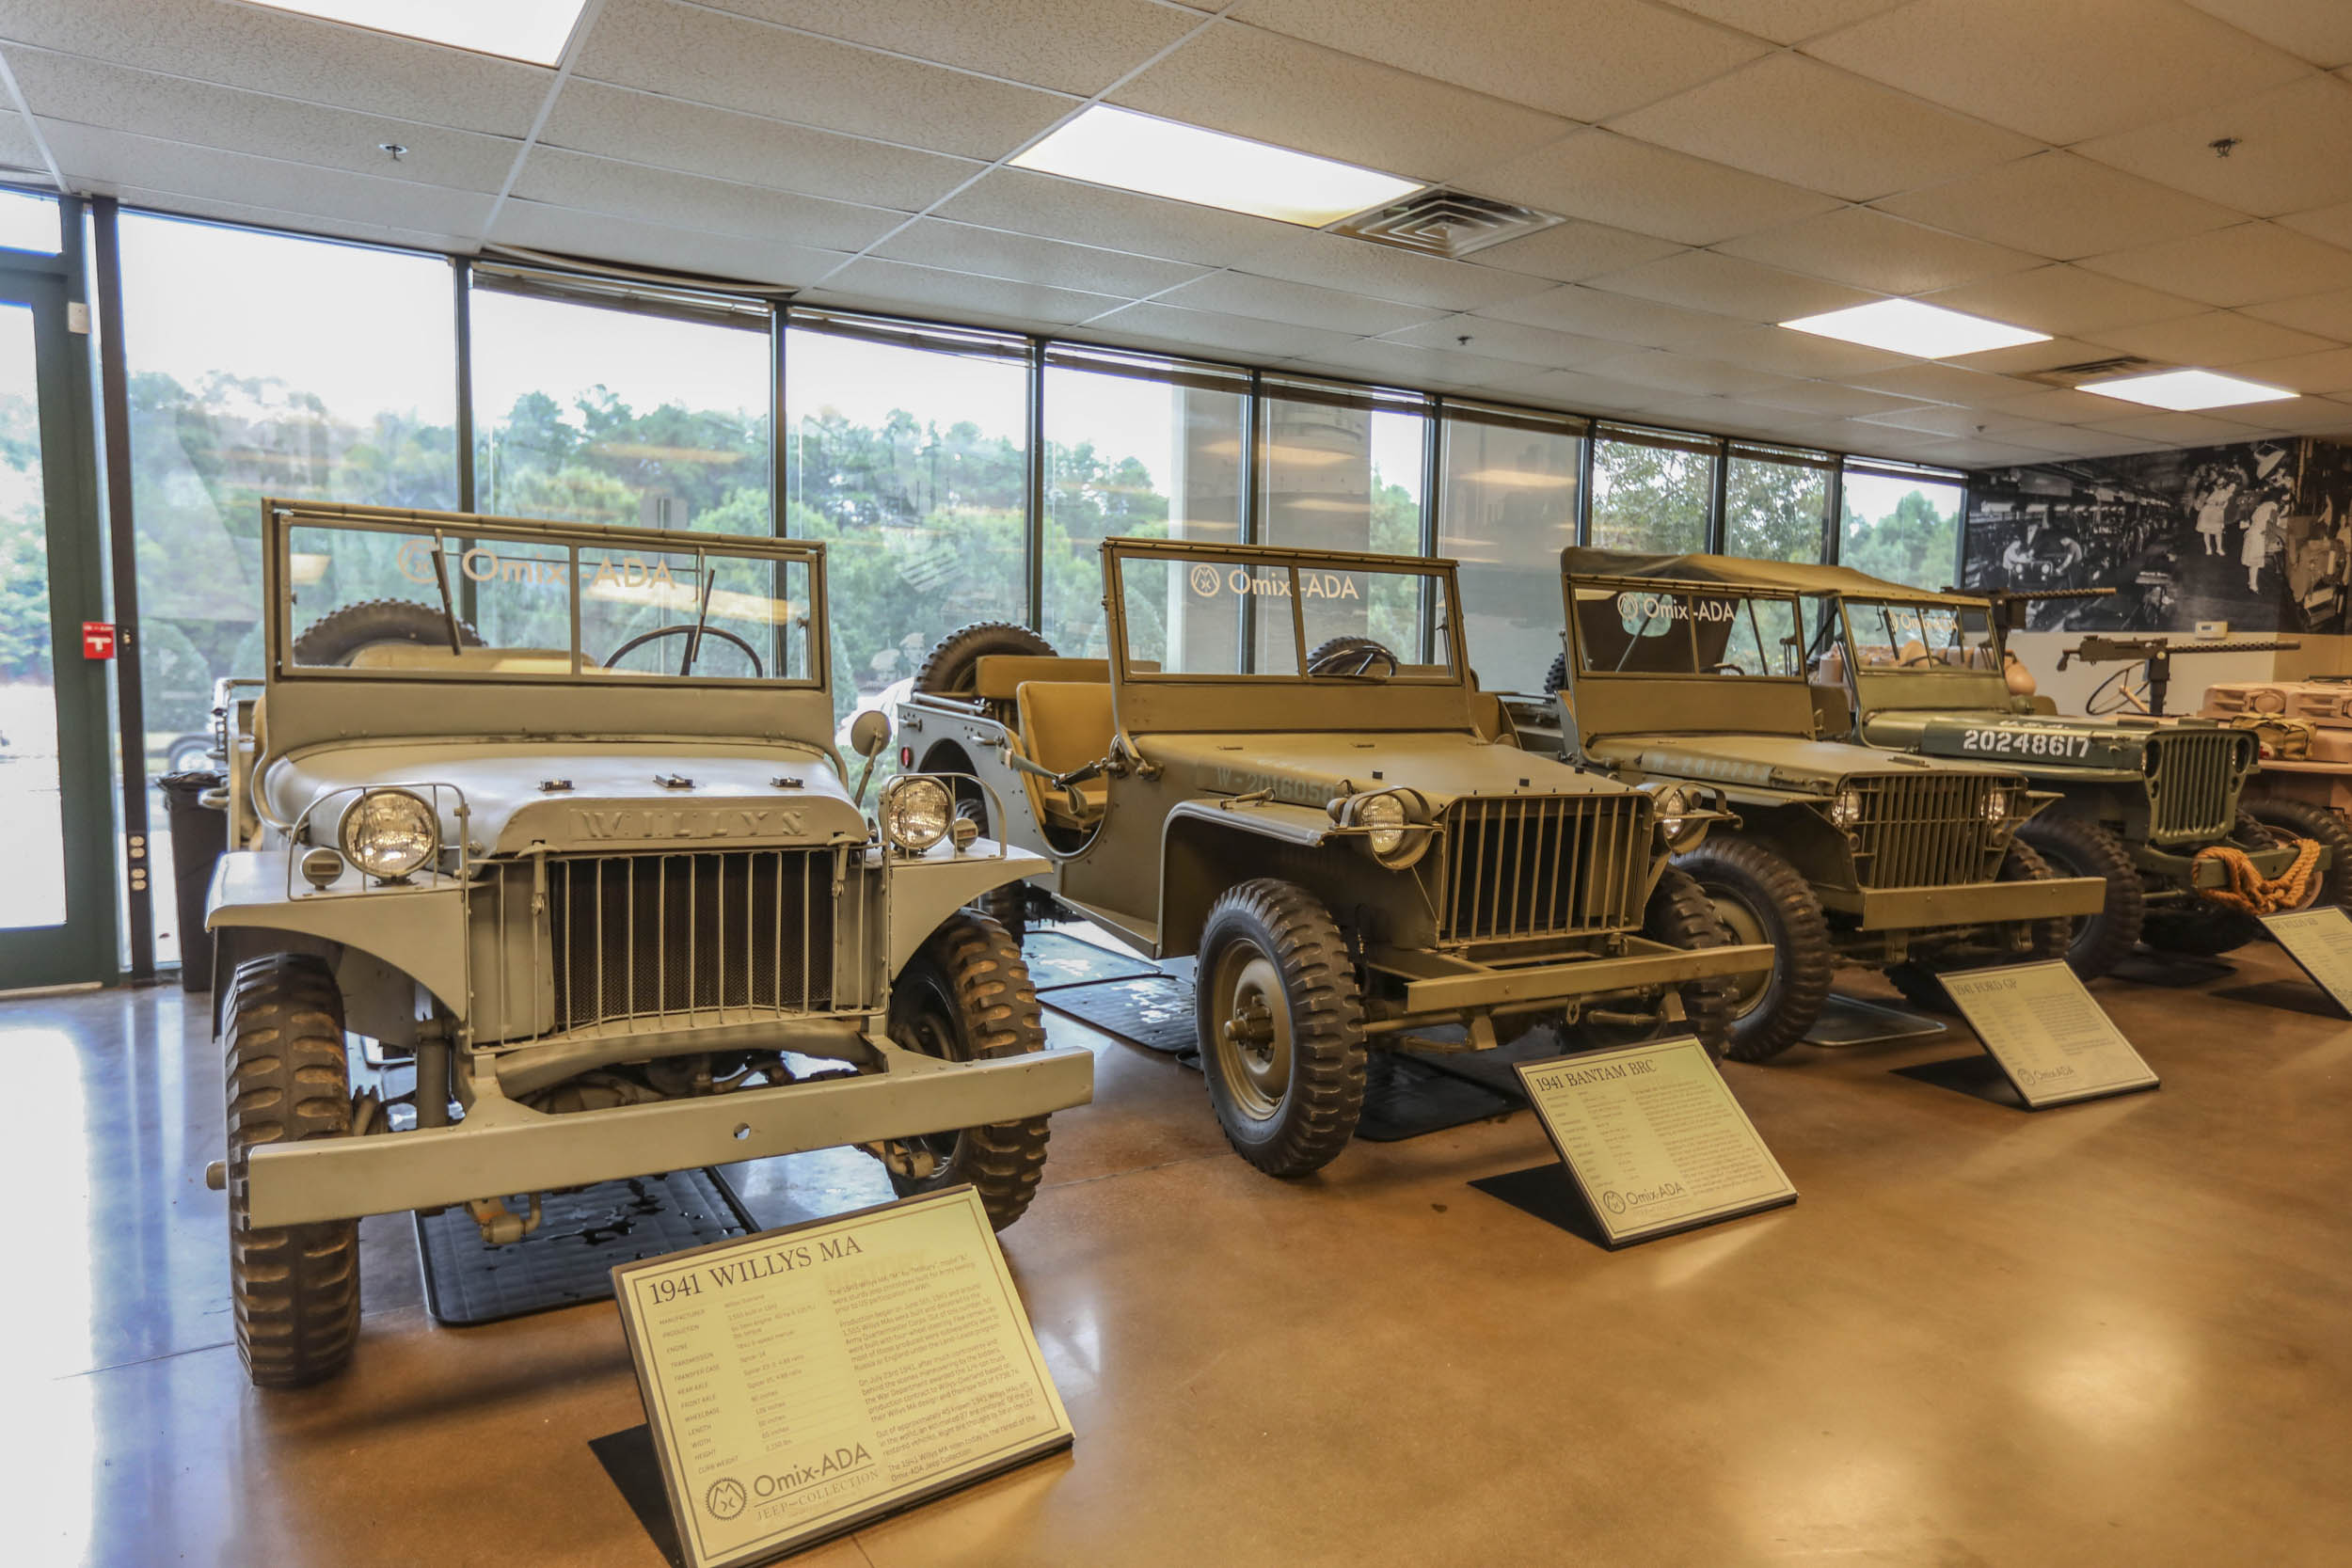 1941 Willys MA, 1941 Bantam BRC, and 1941 Ford GP